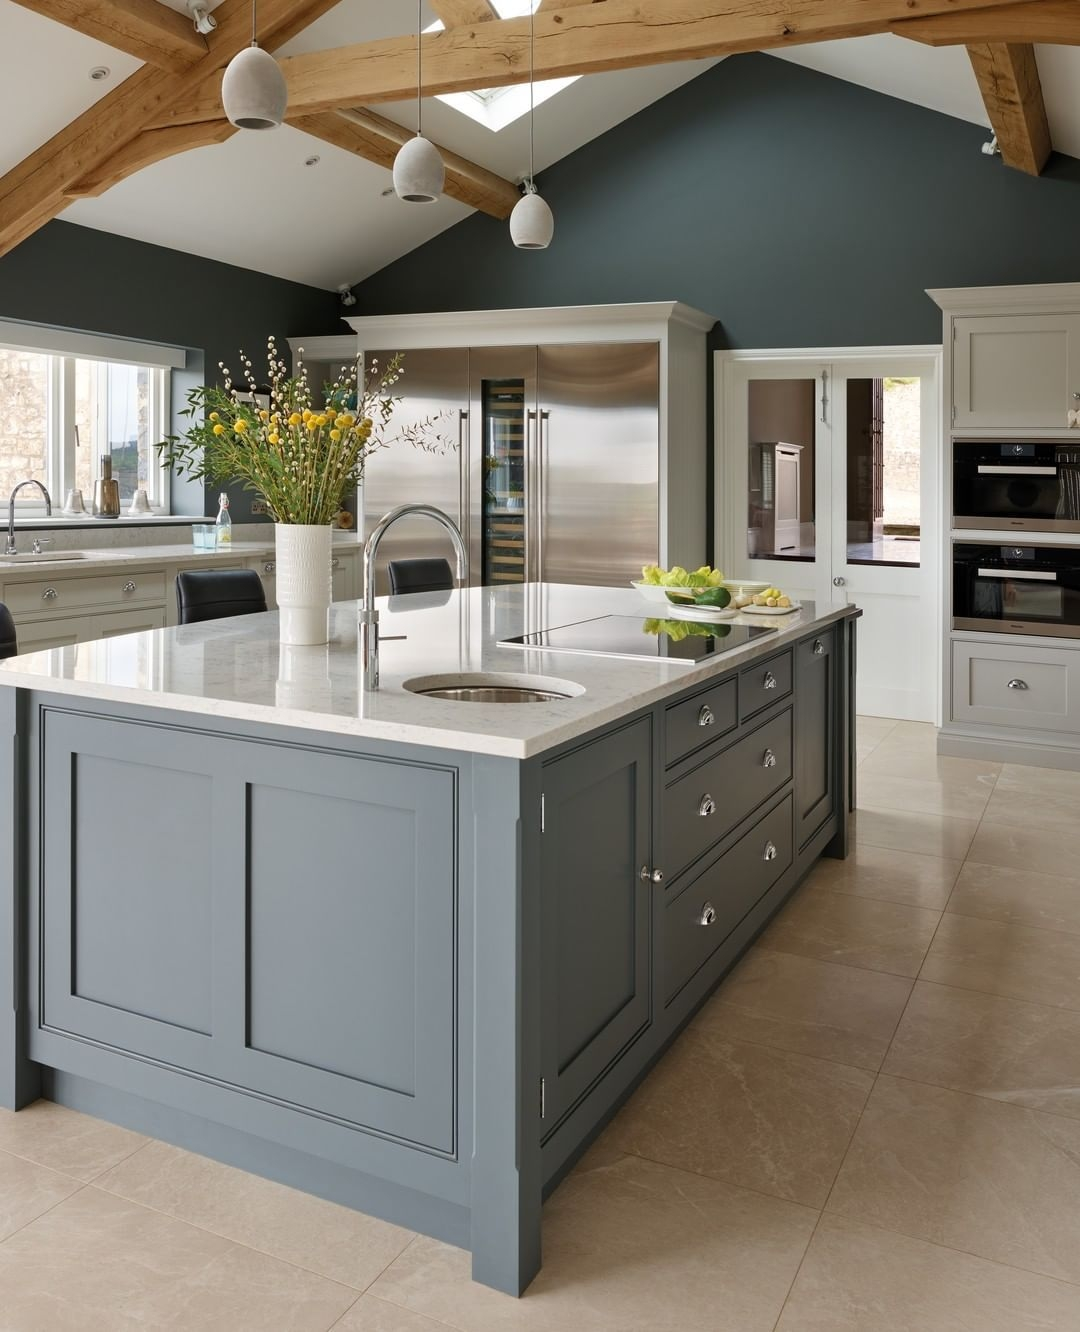 A new spacious kitchen completely transformed the way in